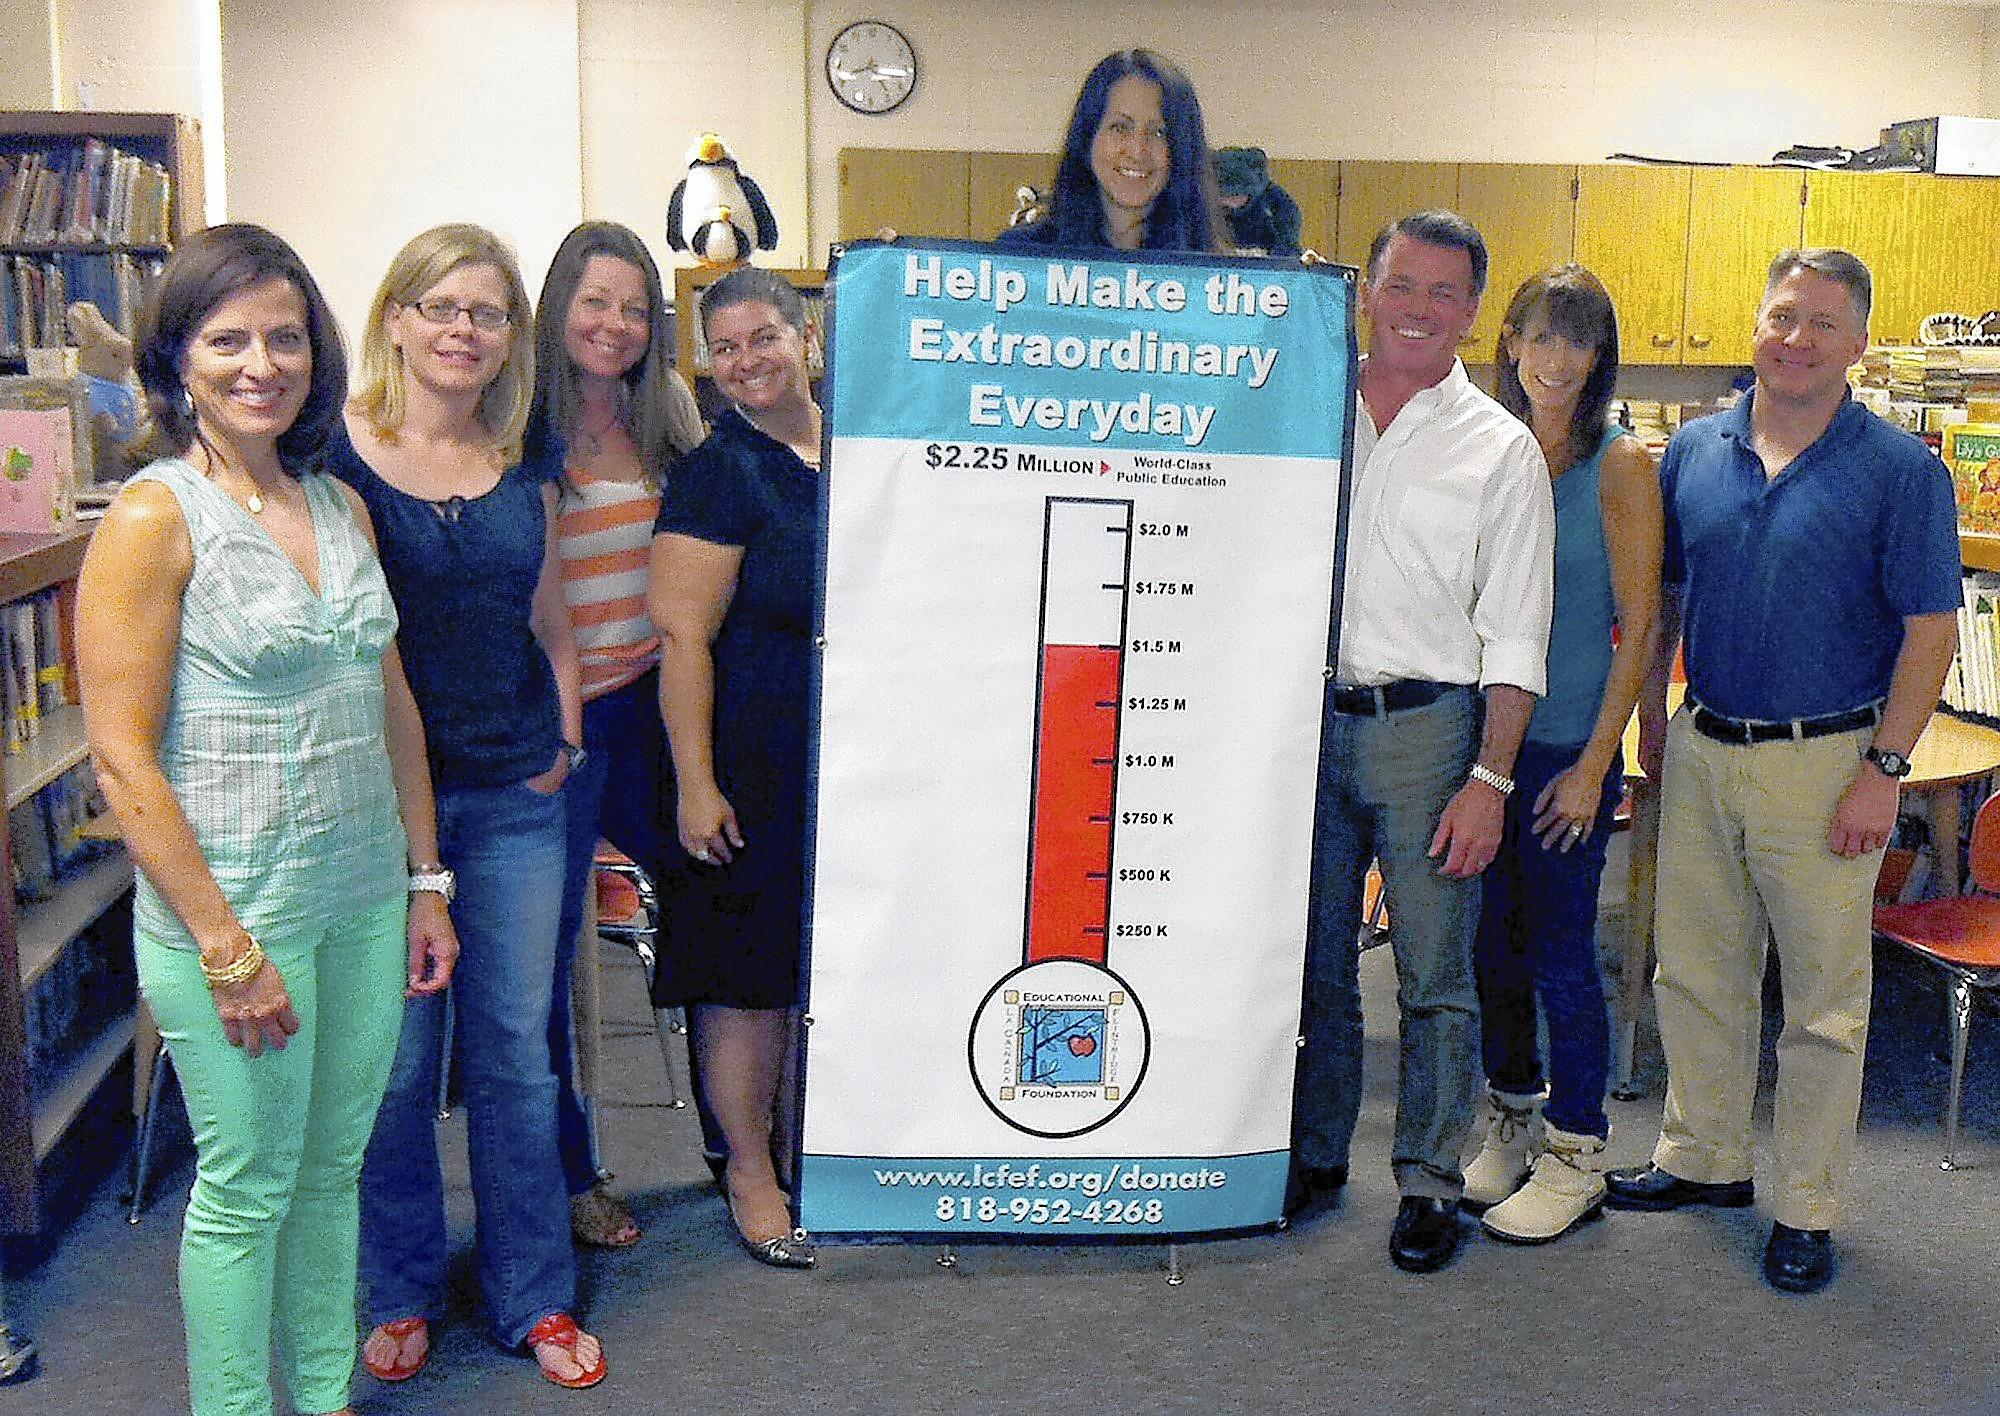 The La Cañada Flintridge Educational Foundation begins its spring phone fundraising campaign next week. Foundation directors looking ahead to the campaign are, photographed, Gina Ricci, Stephanie Fossan, Kelly McWilliams, Nina Ries, Paris Cohen, Steve Ingrassia, Betsy Hall and Brent Kuszyk.